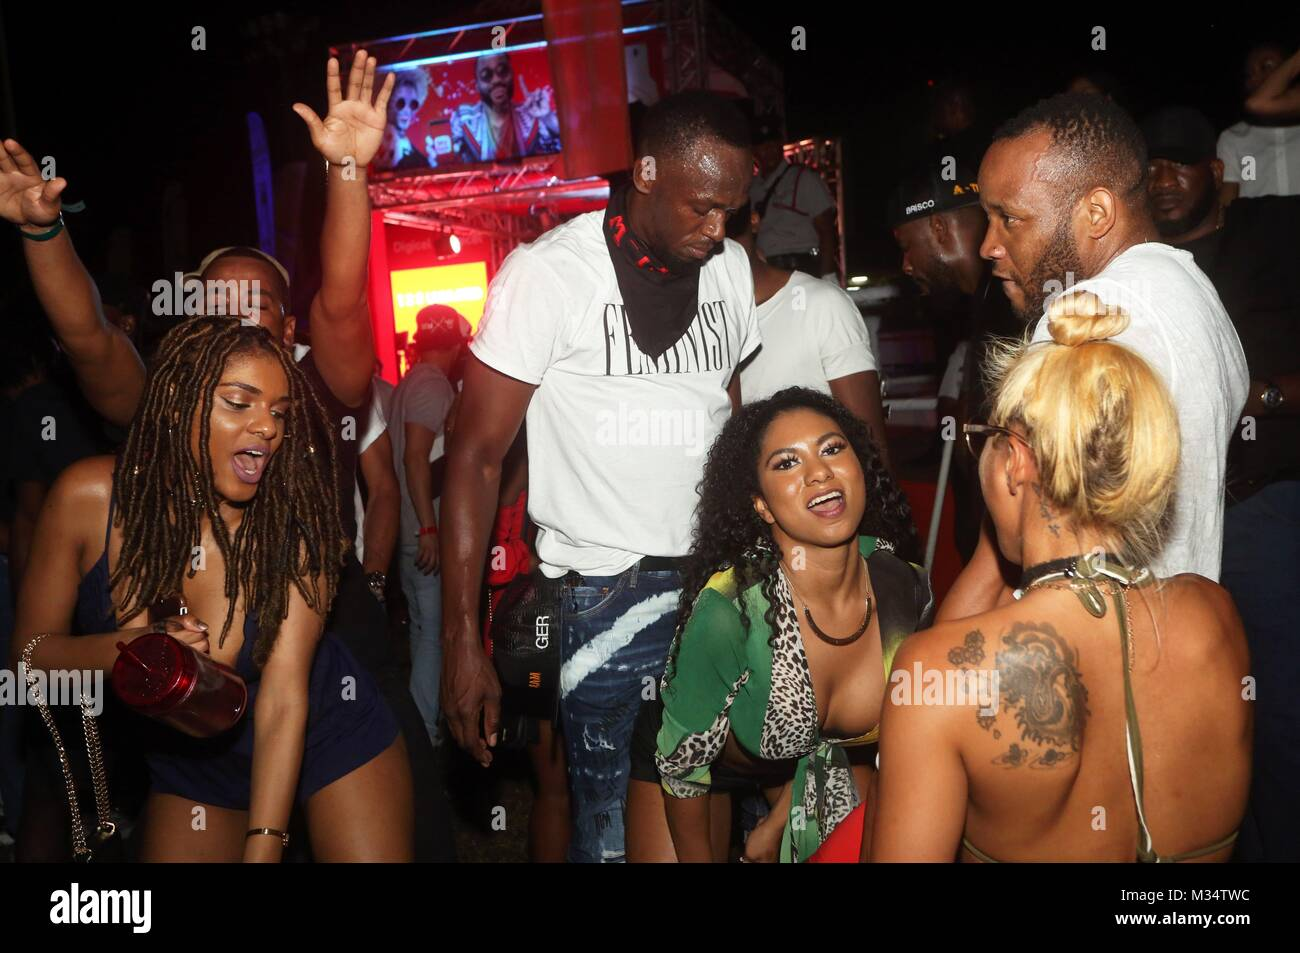 Jamaican ex-athlete Usain Bolt (3-L) dances at the Tribe's Ignite party held as part of Trinidad and Tobago - Stock Image